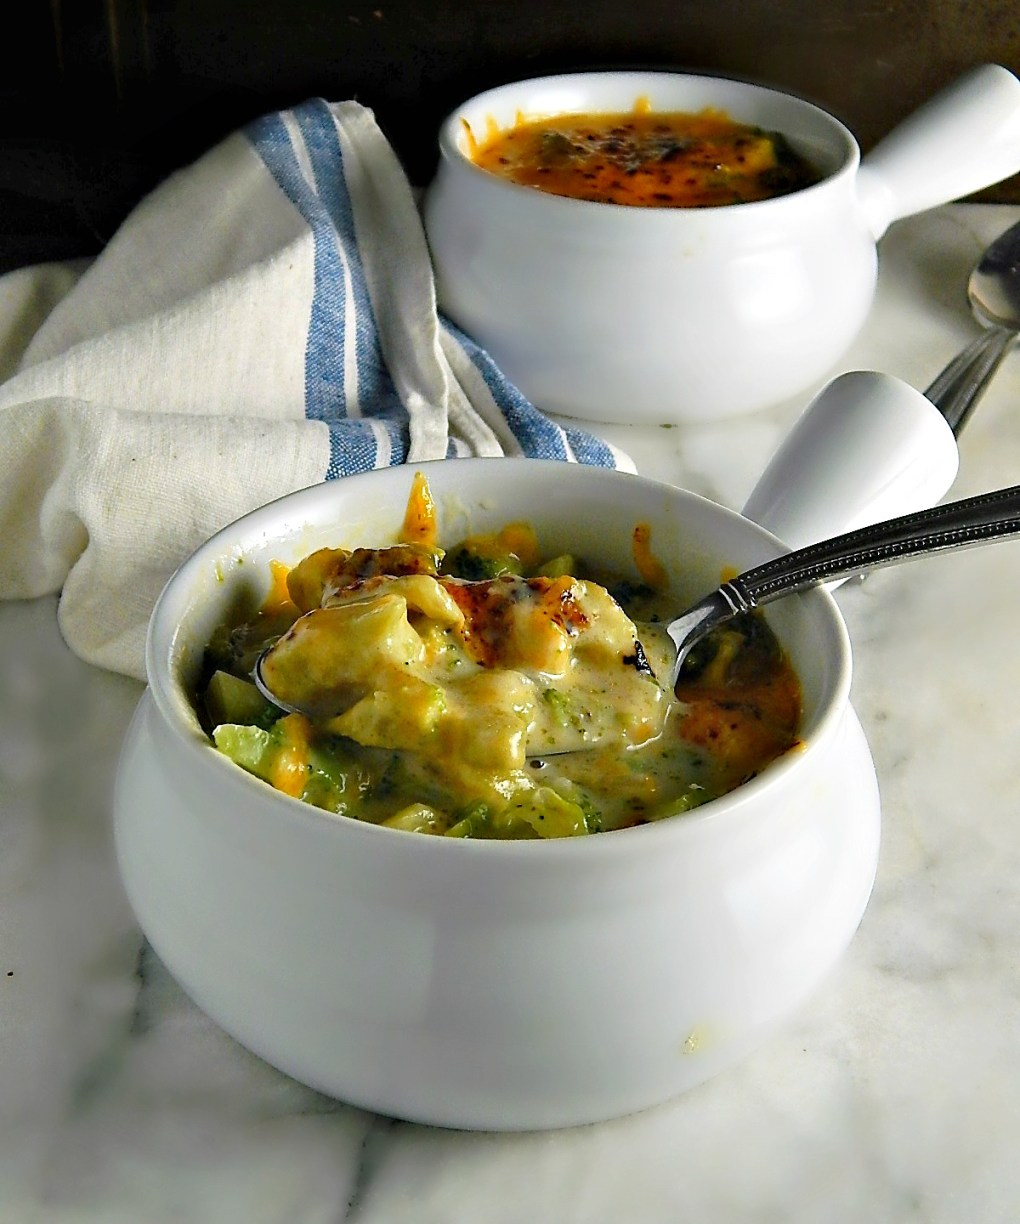 Russell's Cream of Broccoli Soup